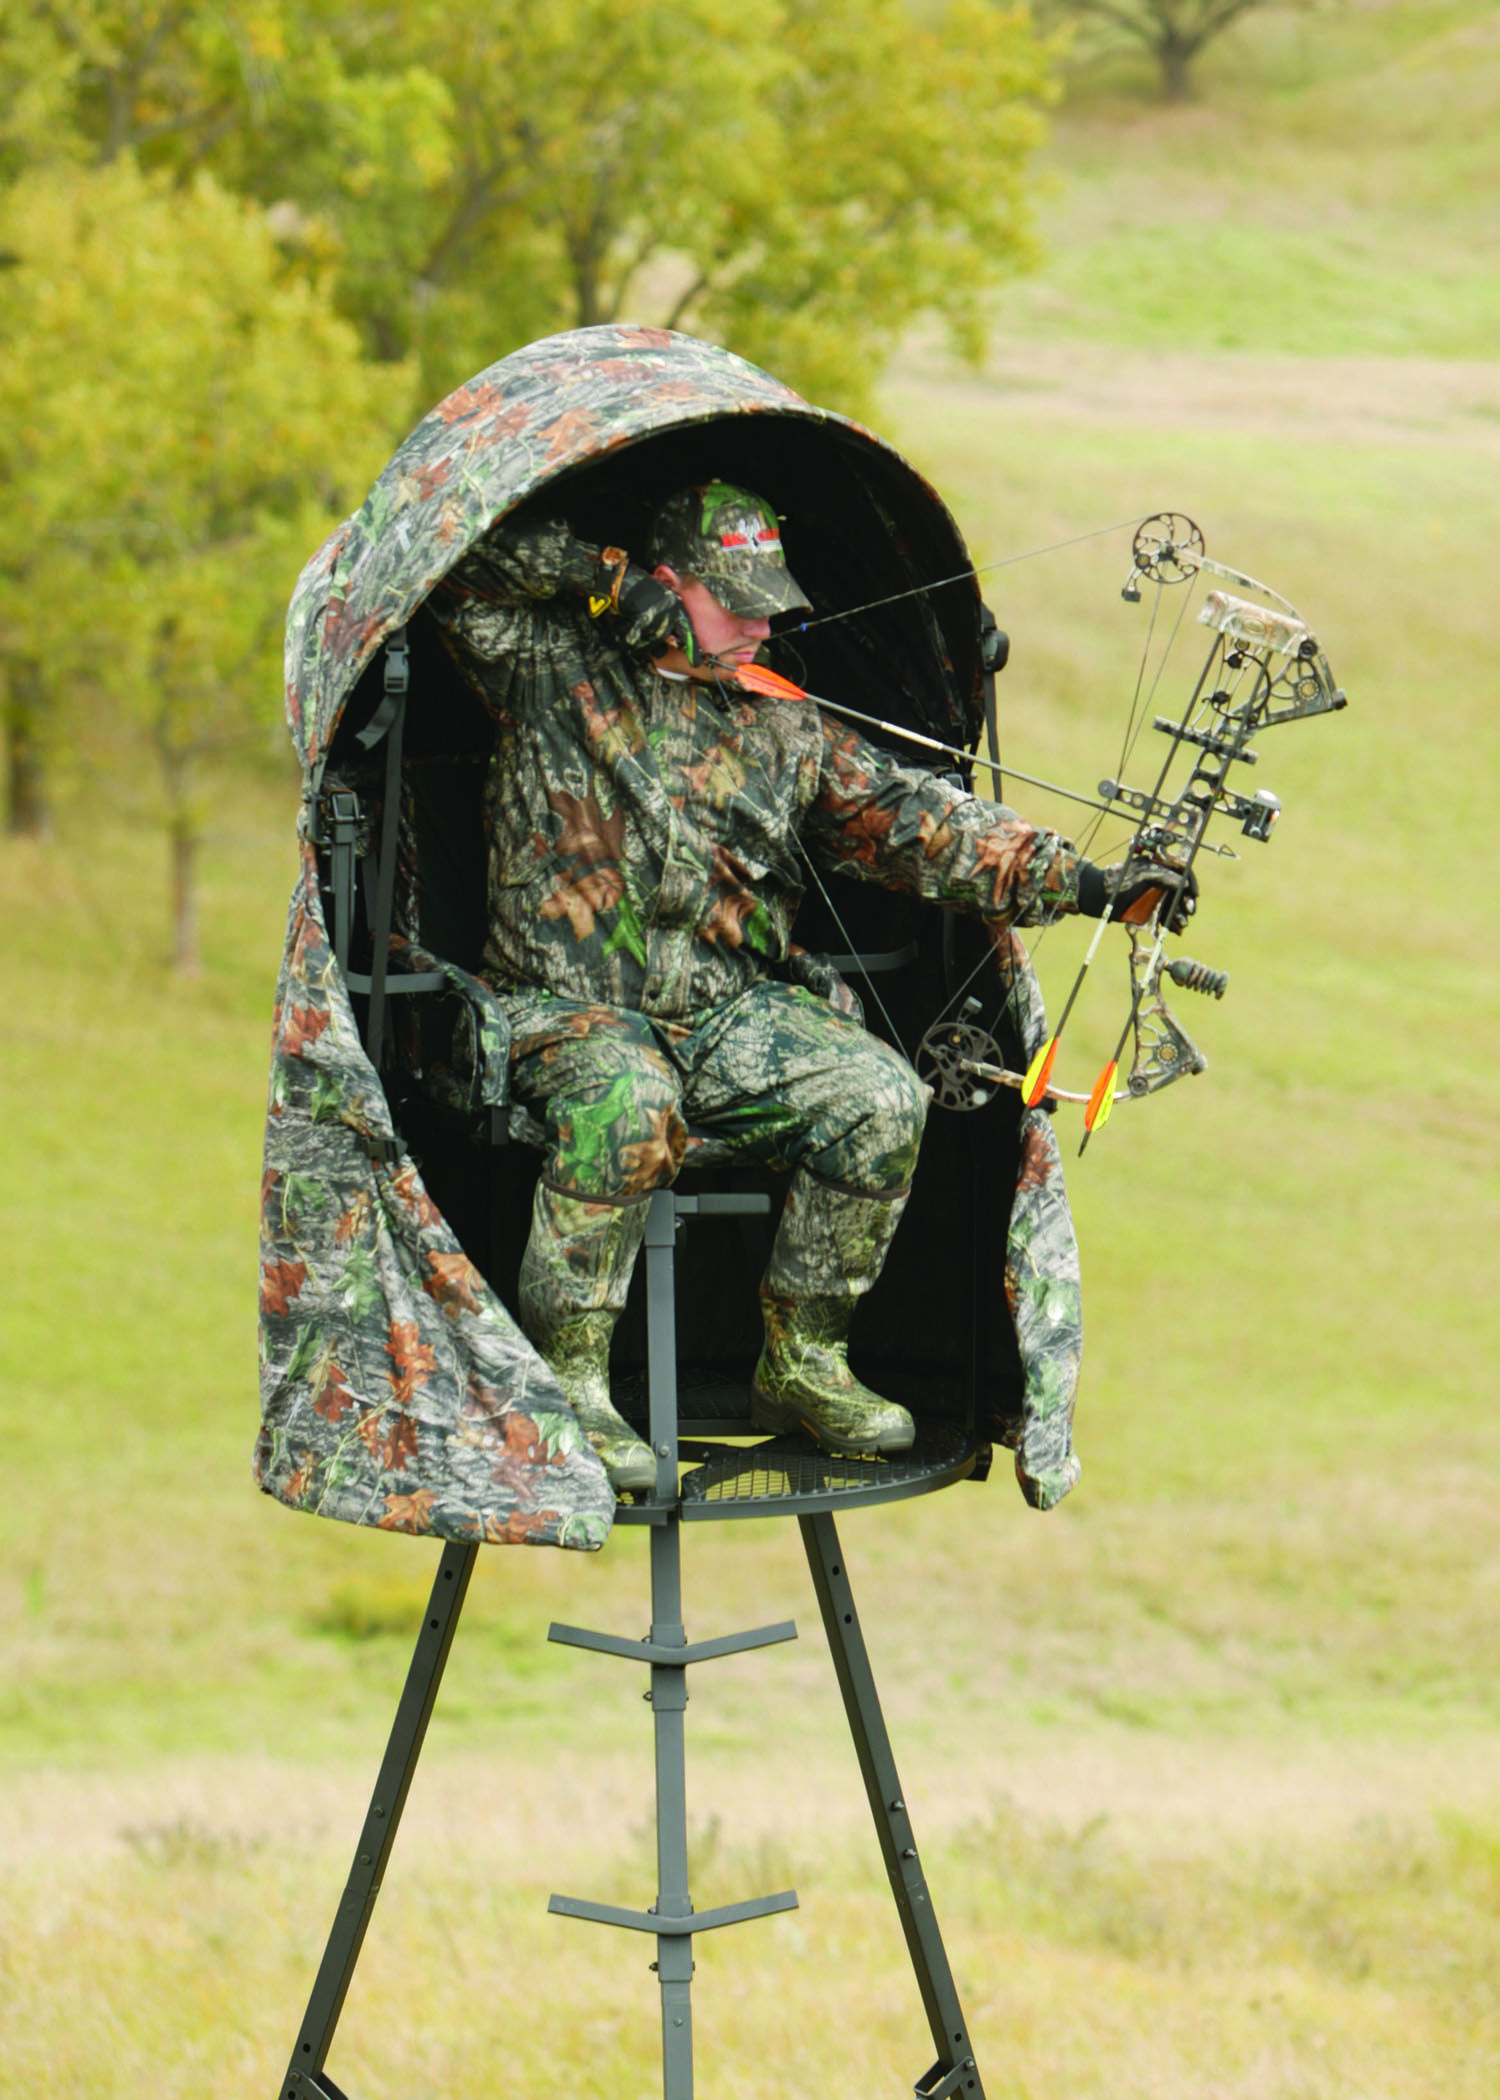 The CoverAll Blind Kit Big Game Tree Stands Hunting stand